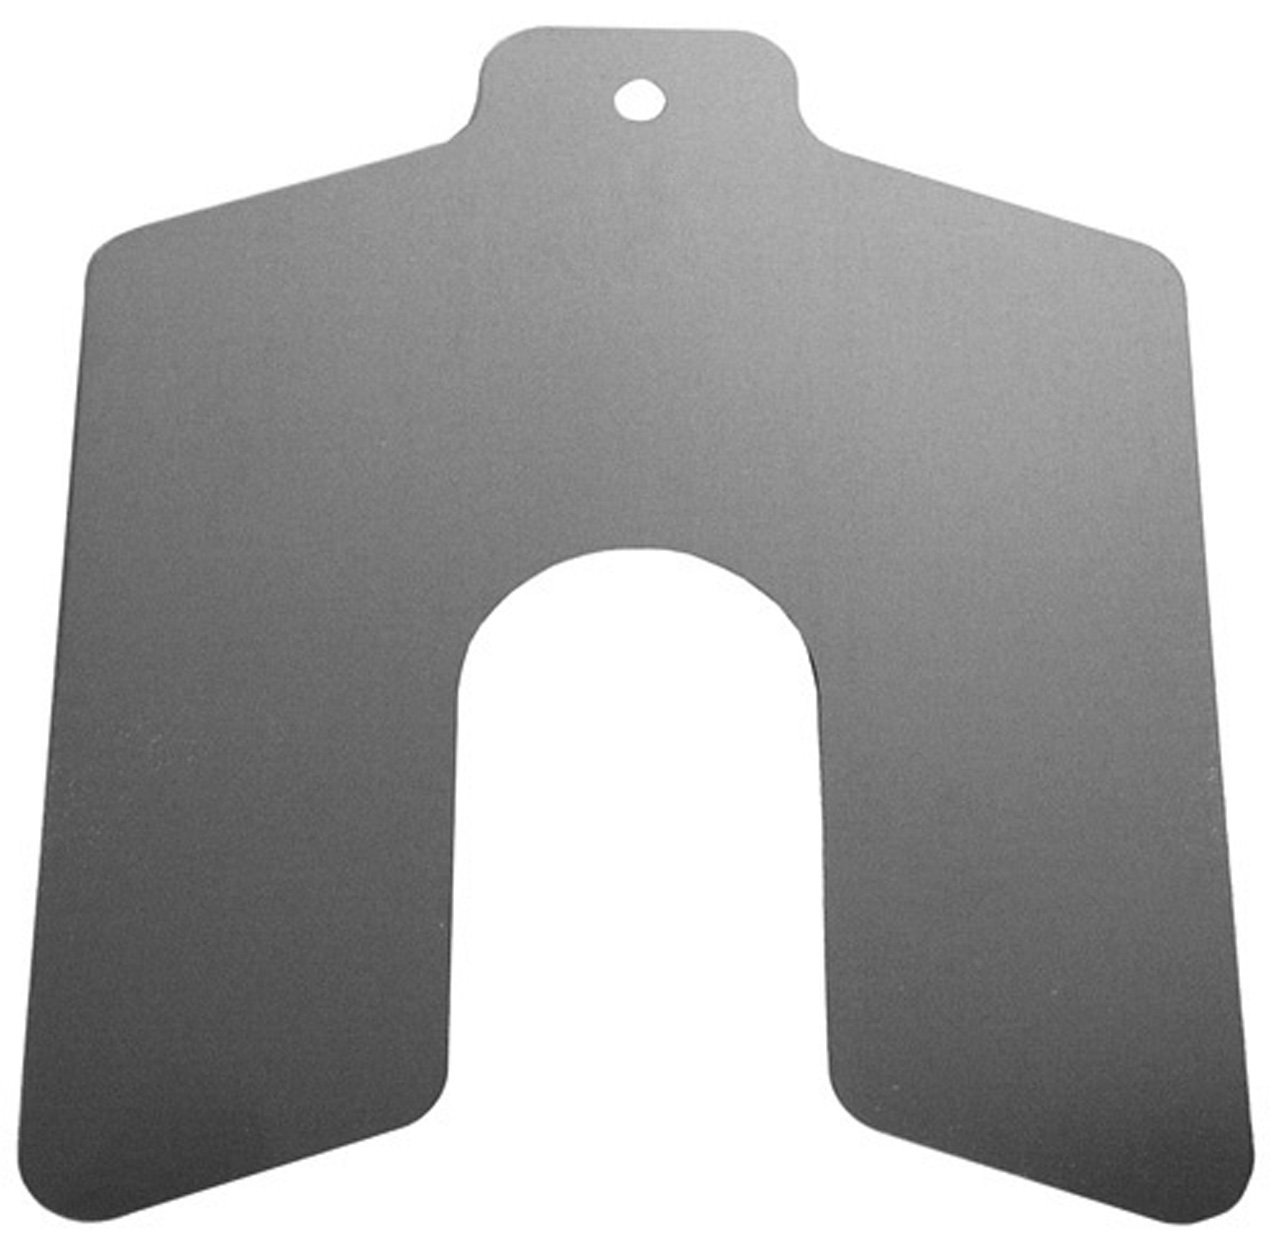 Stainless Steel Slotted Shim, Unpolished (Mill) Finish, 0.005'' Thickness, 5'' Width, 5'' Length (Pack of 20) by Small Parts